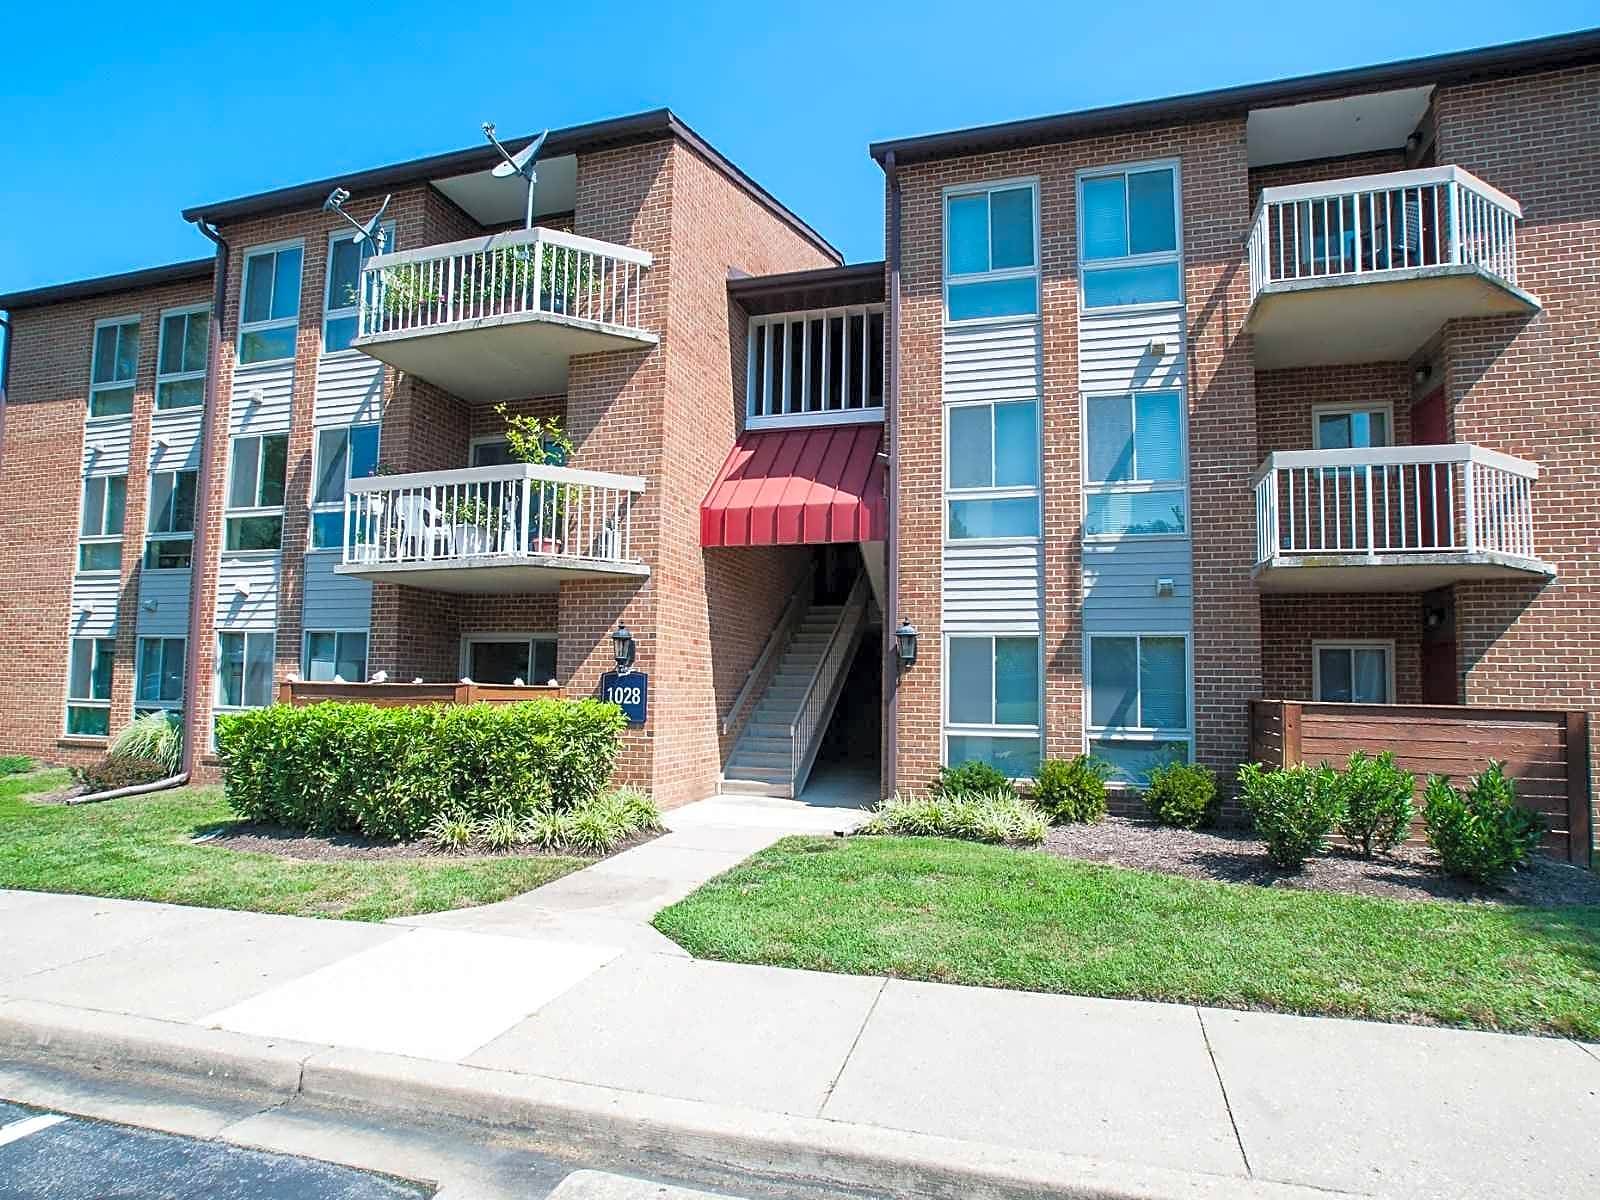 1 bedroom apartments in md all utilities included home design 3 bedroom apartments all utilities included